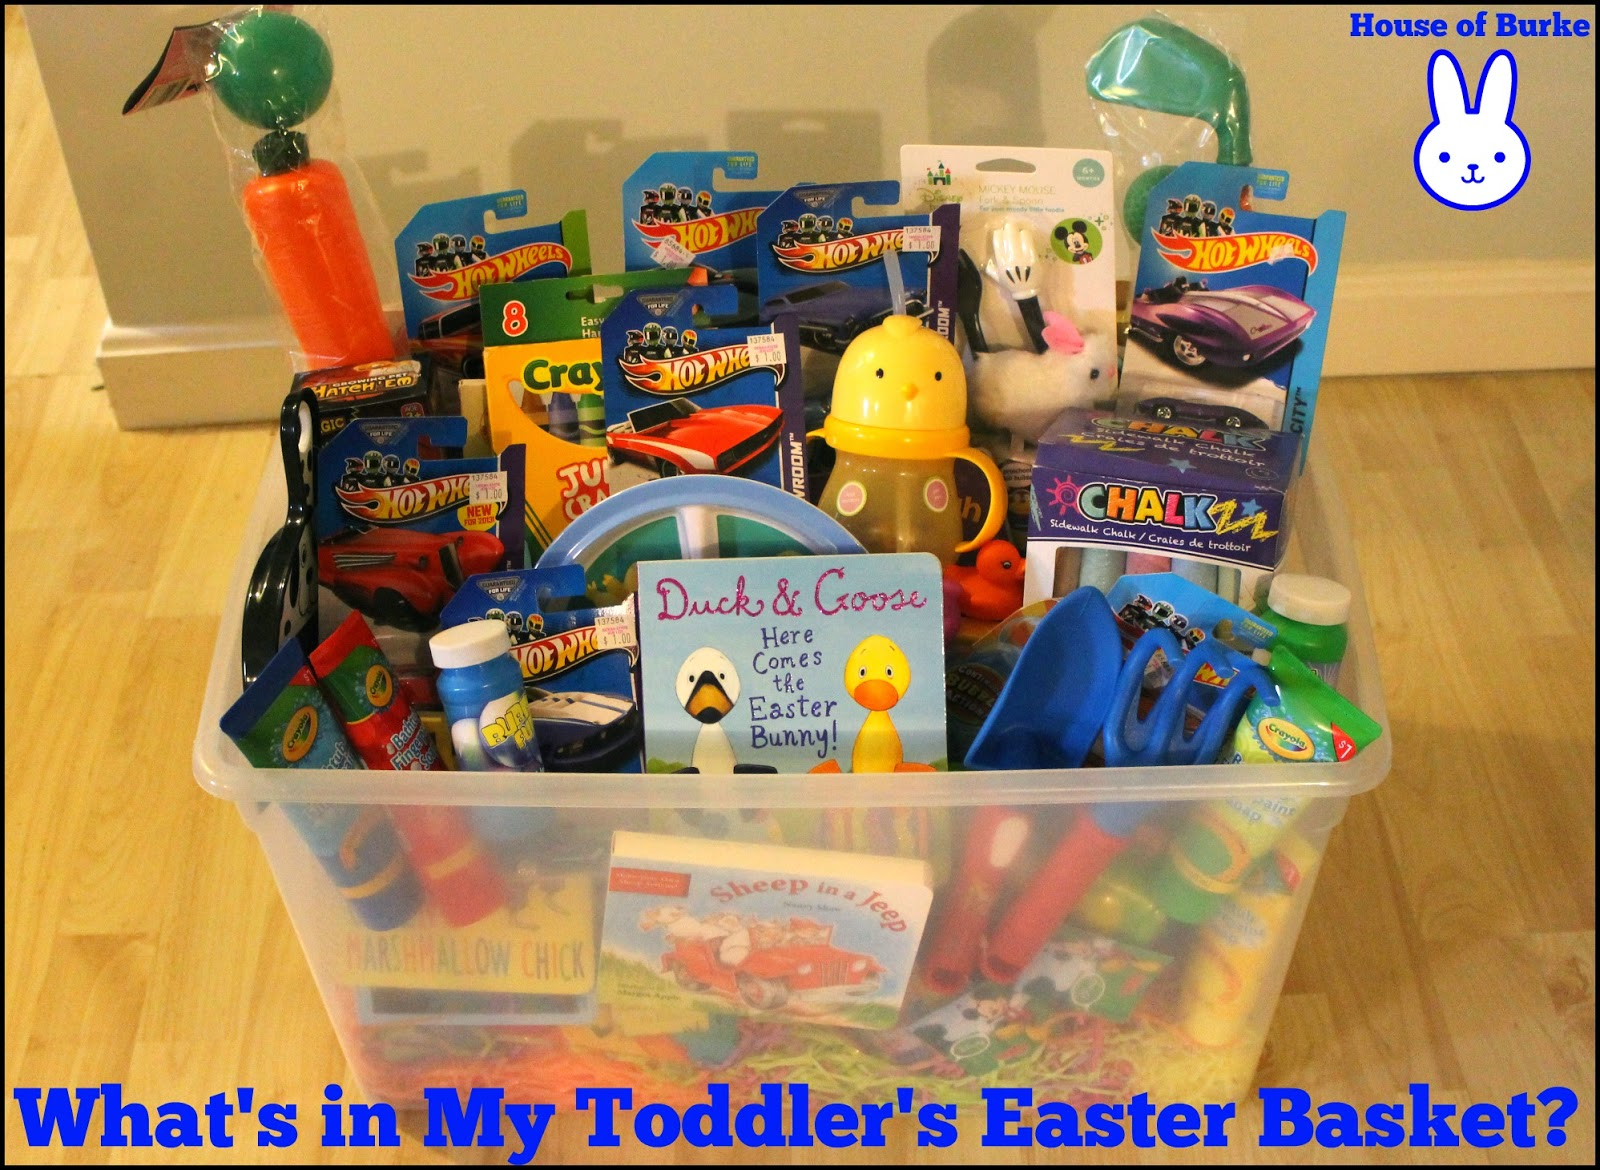 House of burke whats in my toddlers easter basket whats in my toddlers easter basket negle Gallery